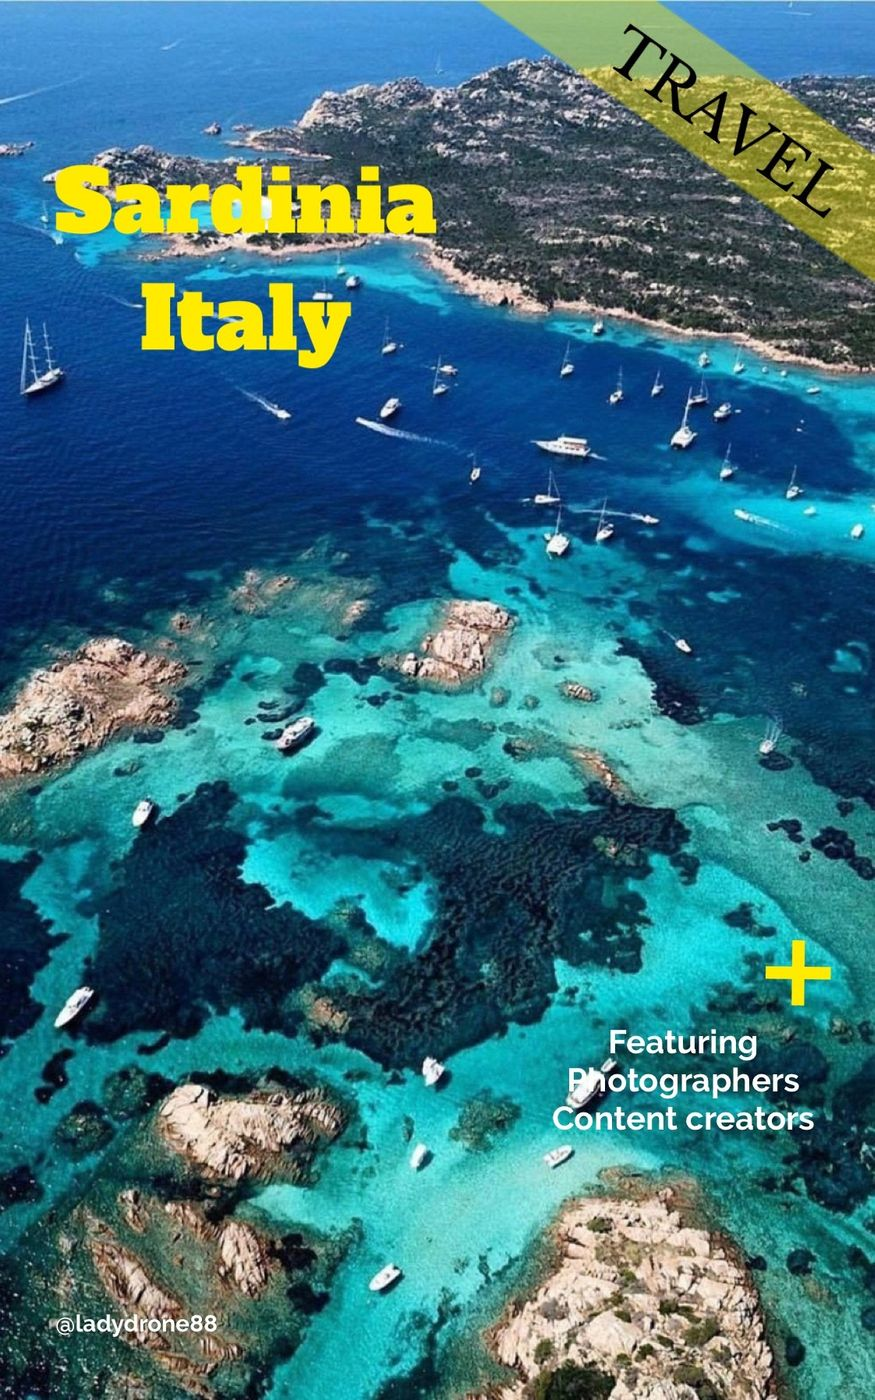 Featuring content creators and photographers | Sardinia, Italy